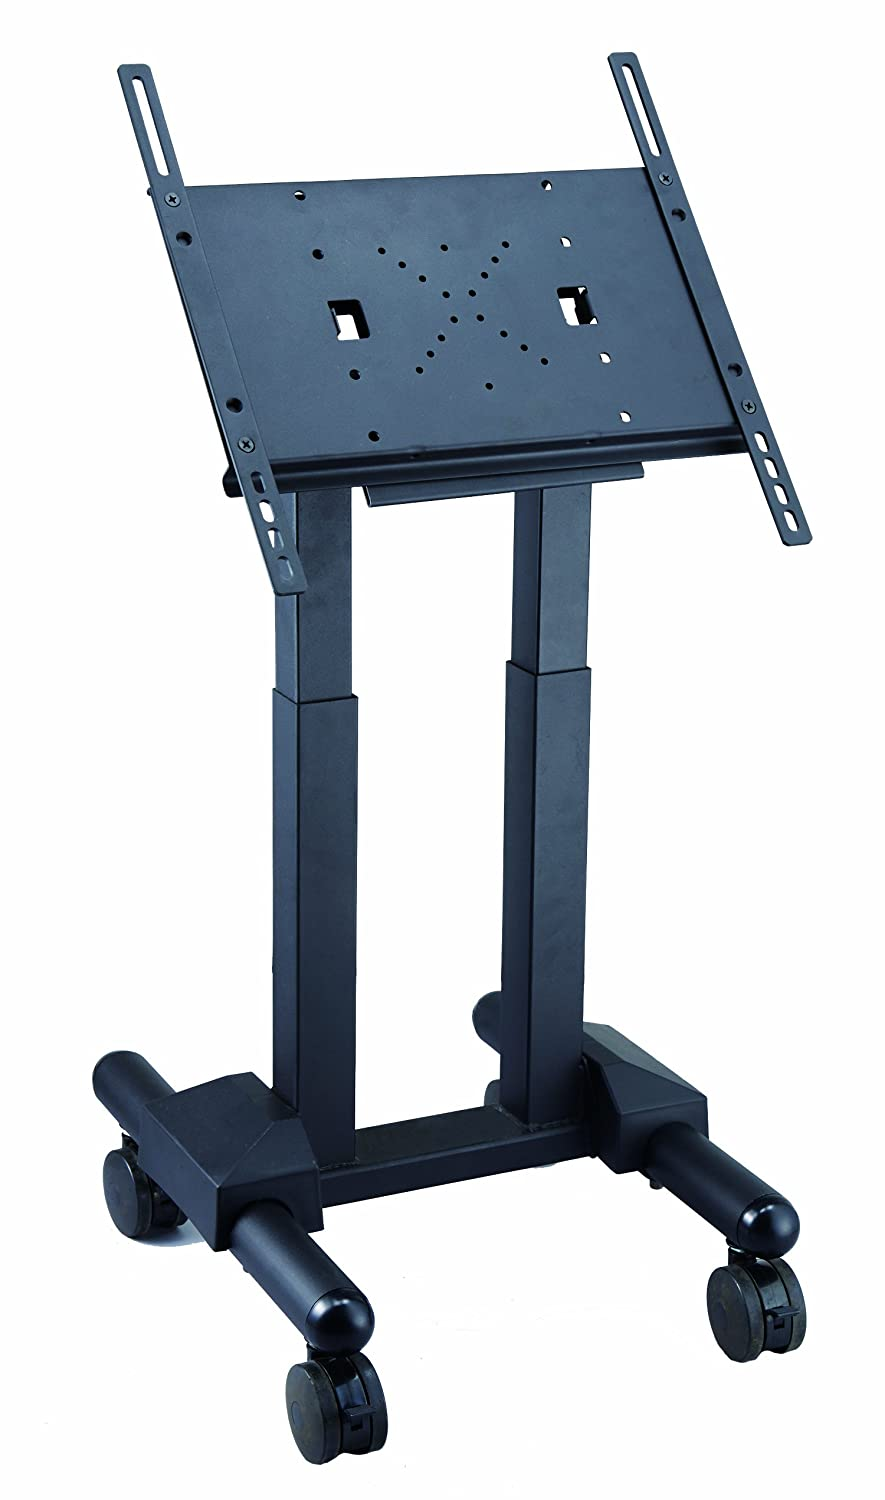 Exhibition Display Stand : Fs short exhibition display stand tv floor